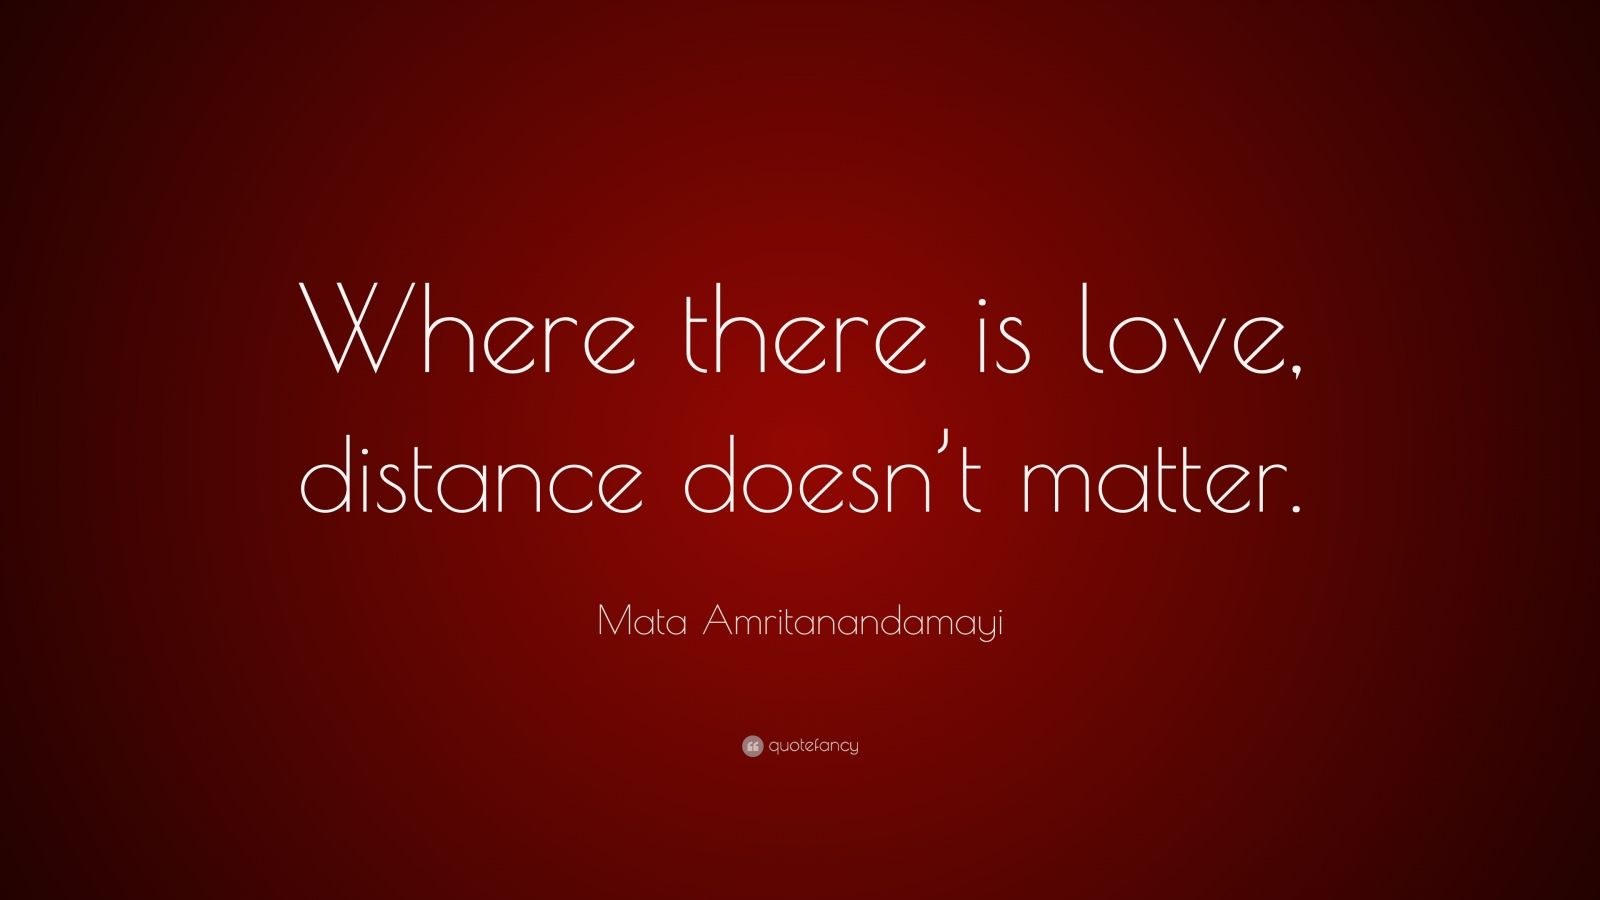 Love Wallpapers With Matter : Mata Amritanandamayi Quote: ?Where there is love, distance doesn t matter.? (9 wallpapers ...